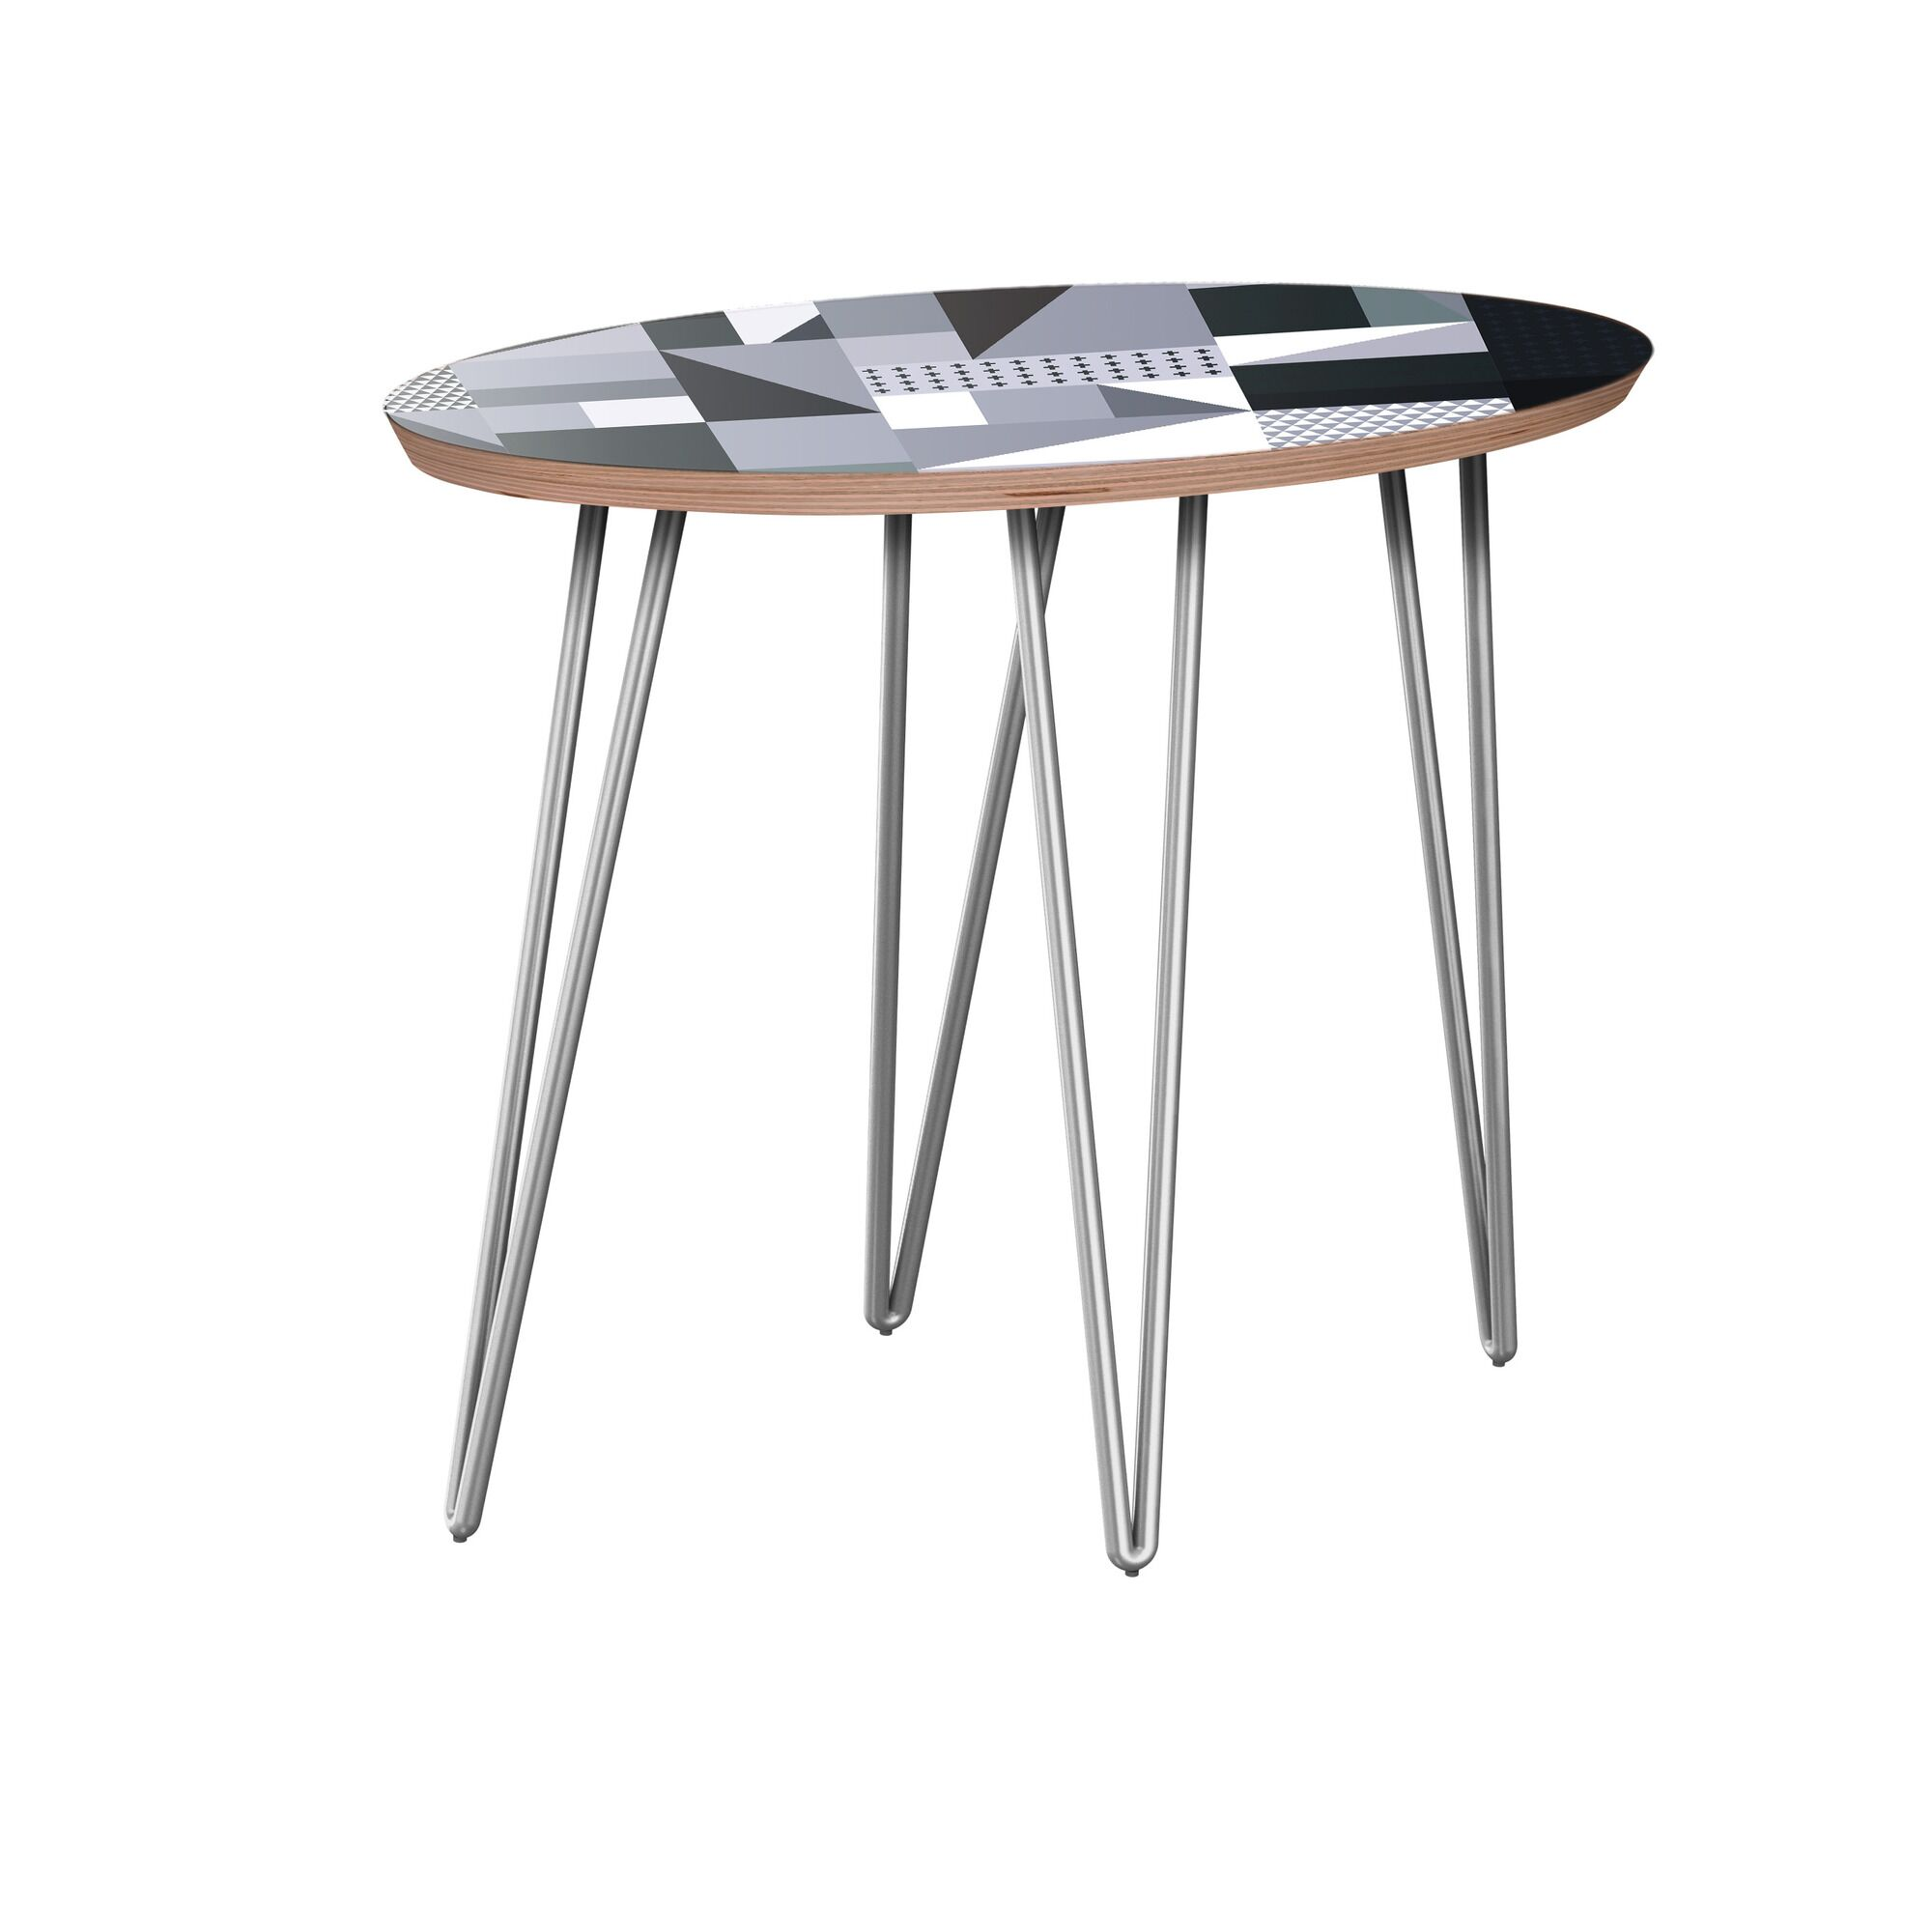 Hudson Yards End Table Table Base Color: Chrome, Table Top Color: Walnut